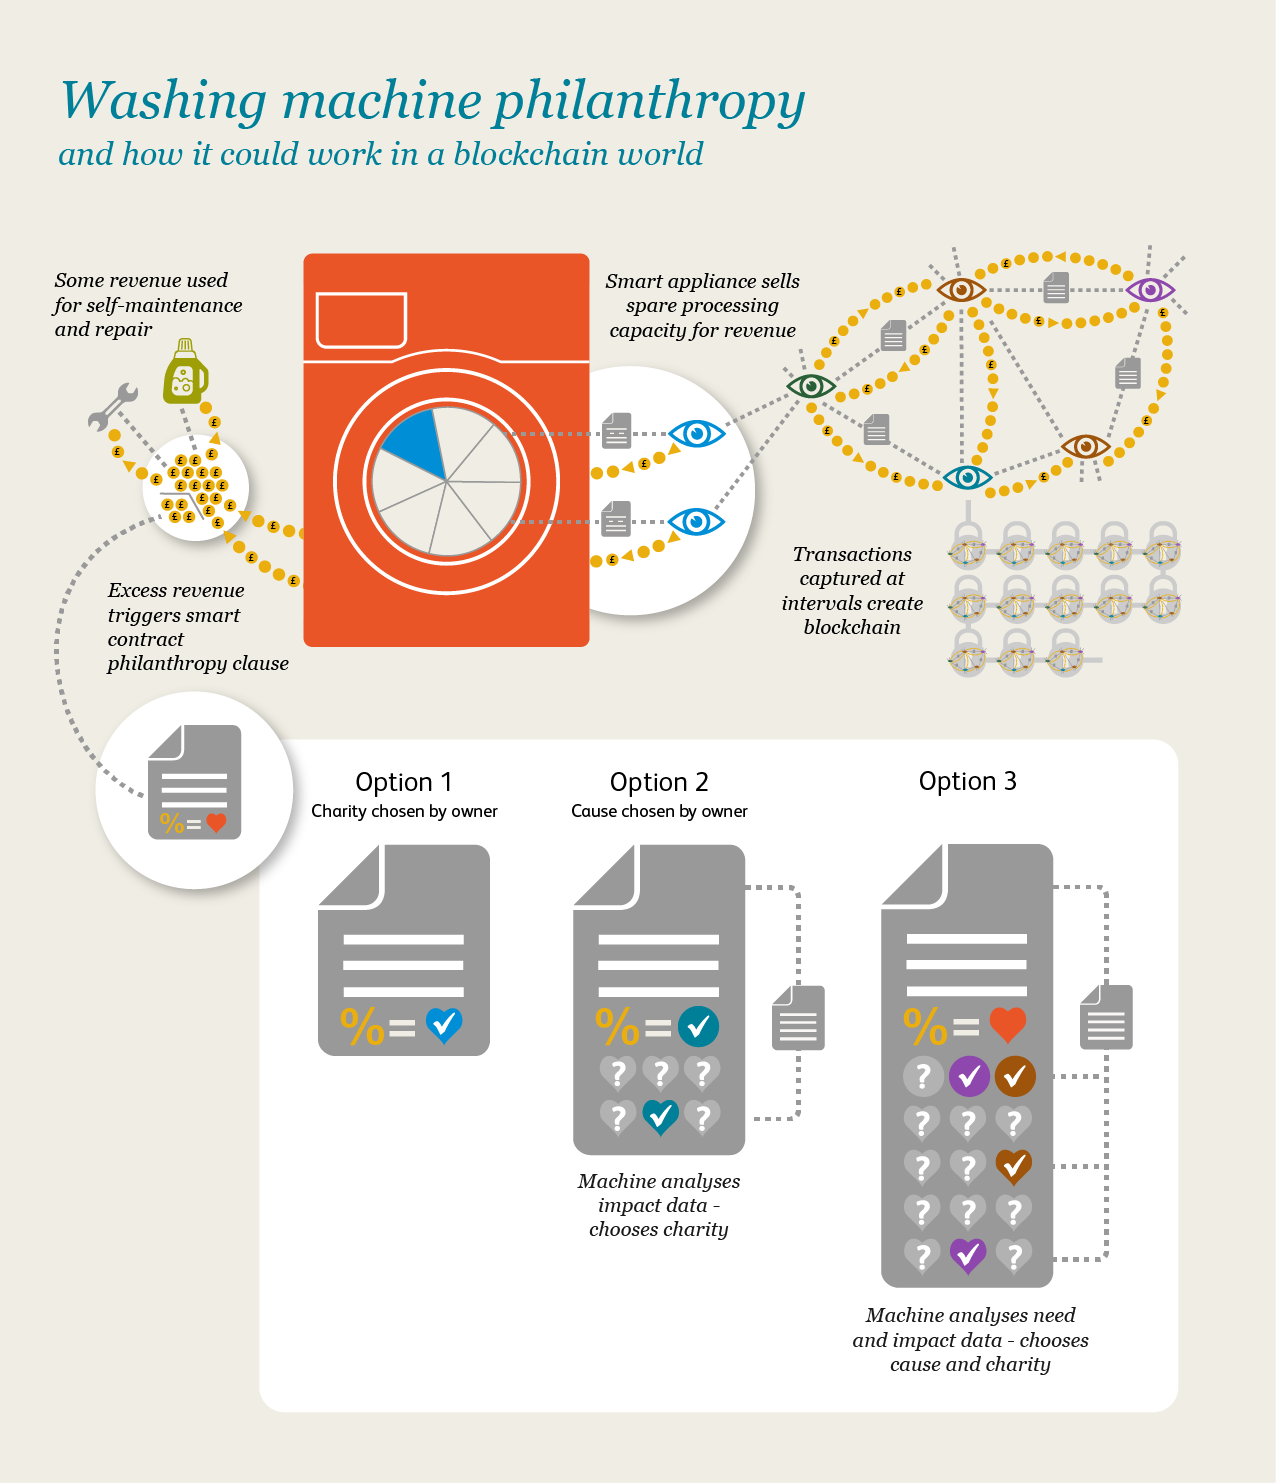 blockchain-philanthropy-washing-machine-infographic